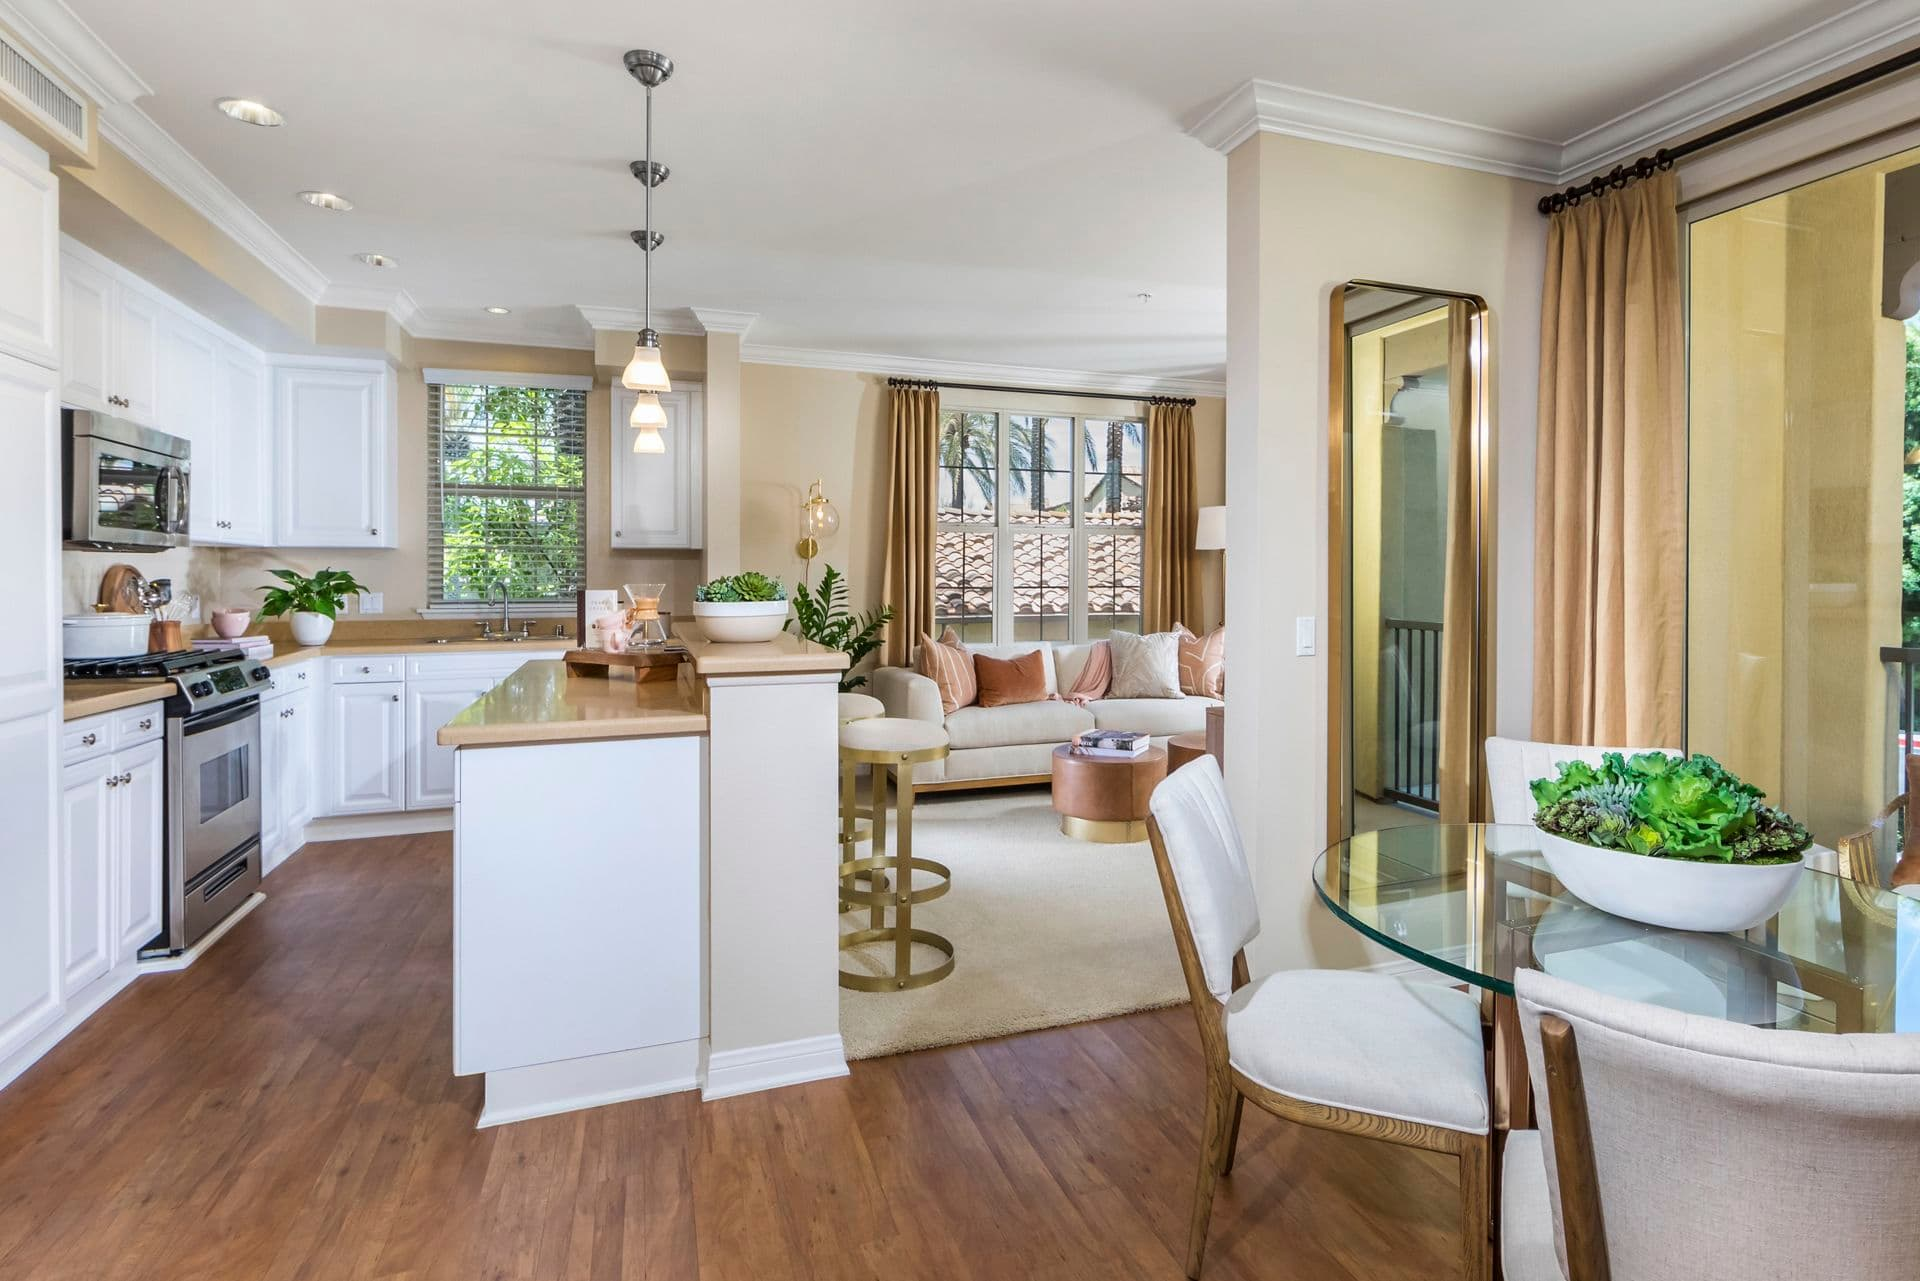 Interior view of kitchen and dining room at Orchard Hills Apartment Homes in Irvine, CA.